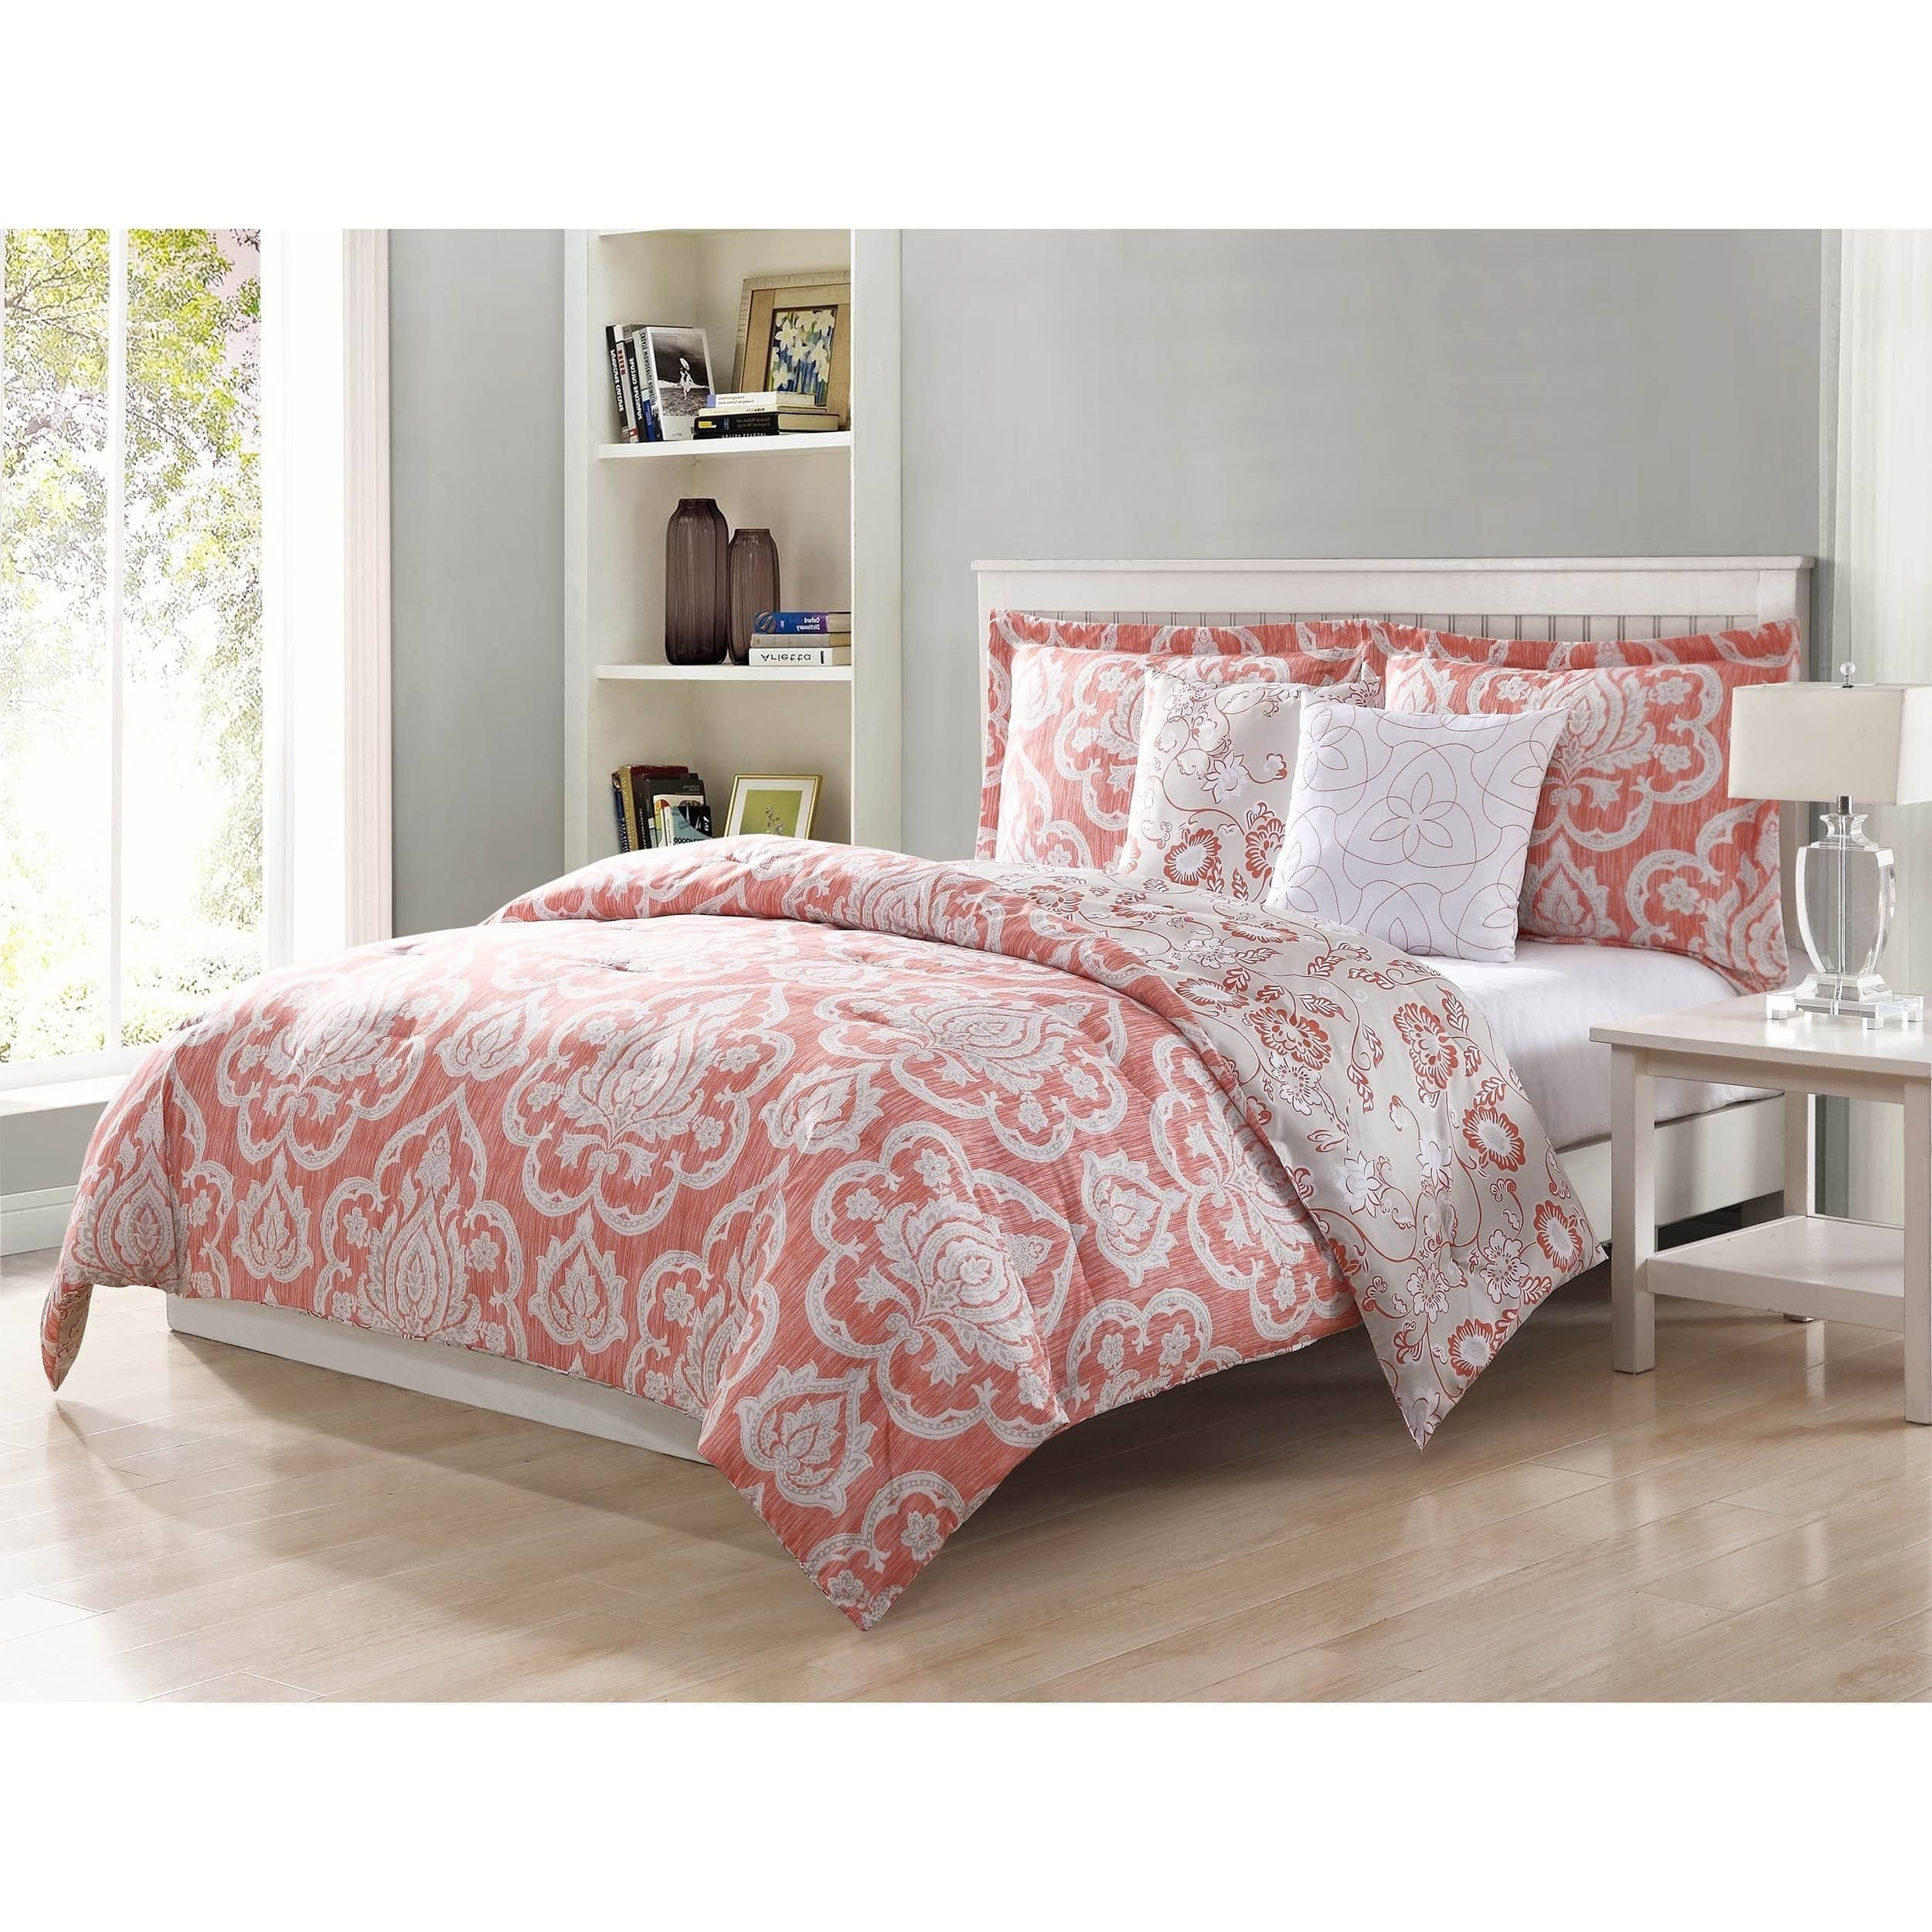 King Bedroom Comforter Set Best Of Studio 17 Dorian Blush 5 Piece Reversible forter Set